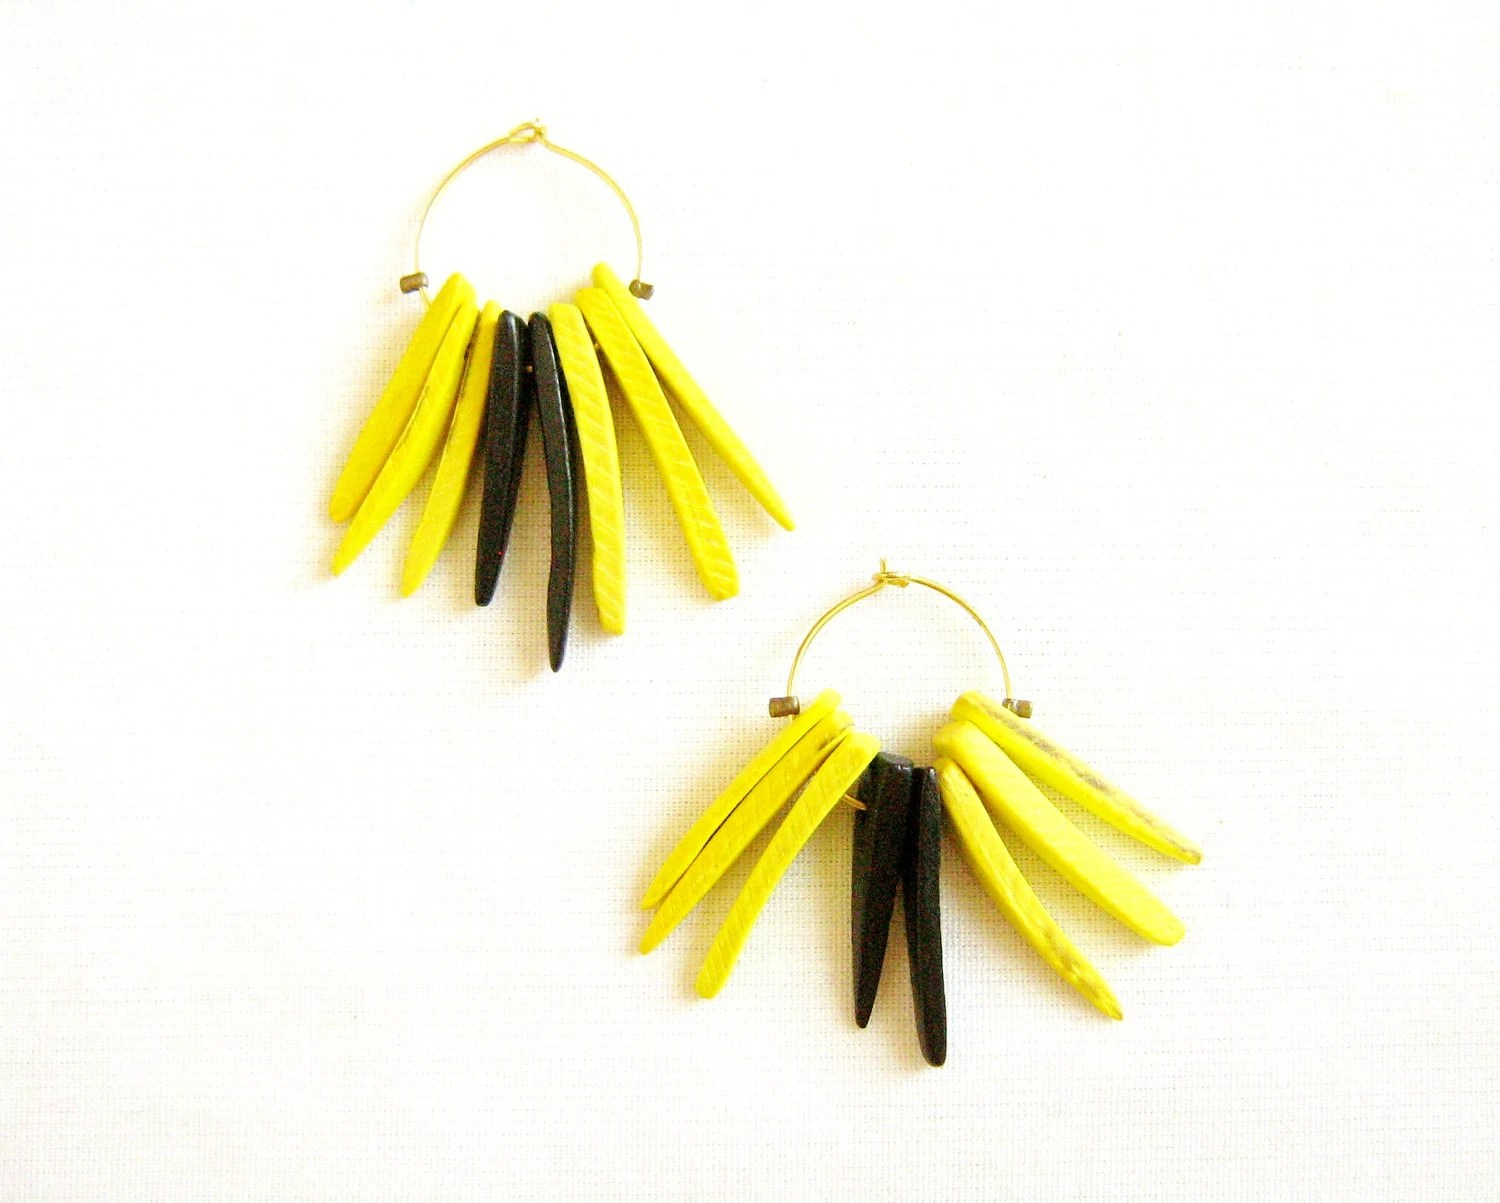 Spike  Earrings in Neon Yellow and Black, Salamander - Jungle Queen Collection,  Coco Tusk Tribal Spikes Handmade earrings - AlinaandT